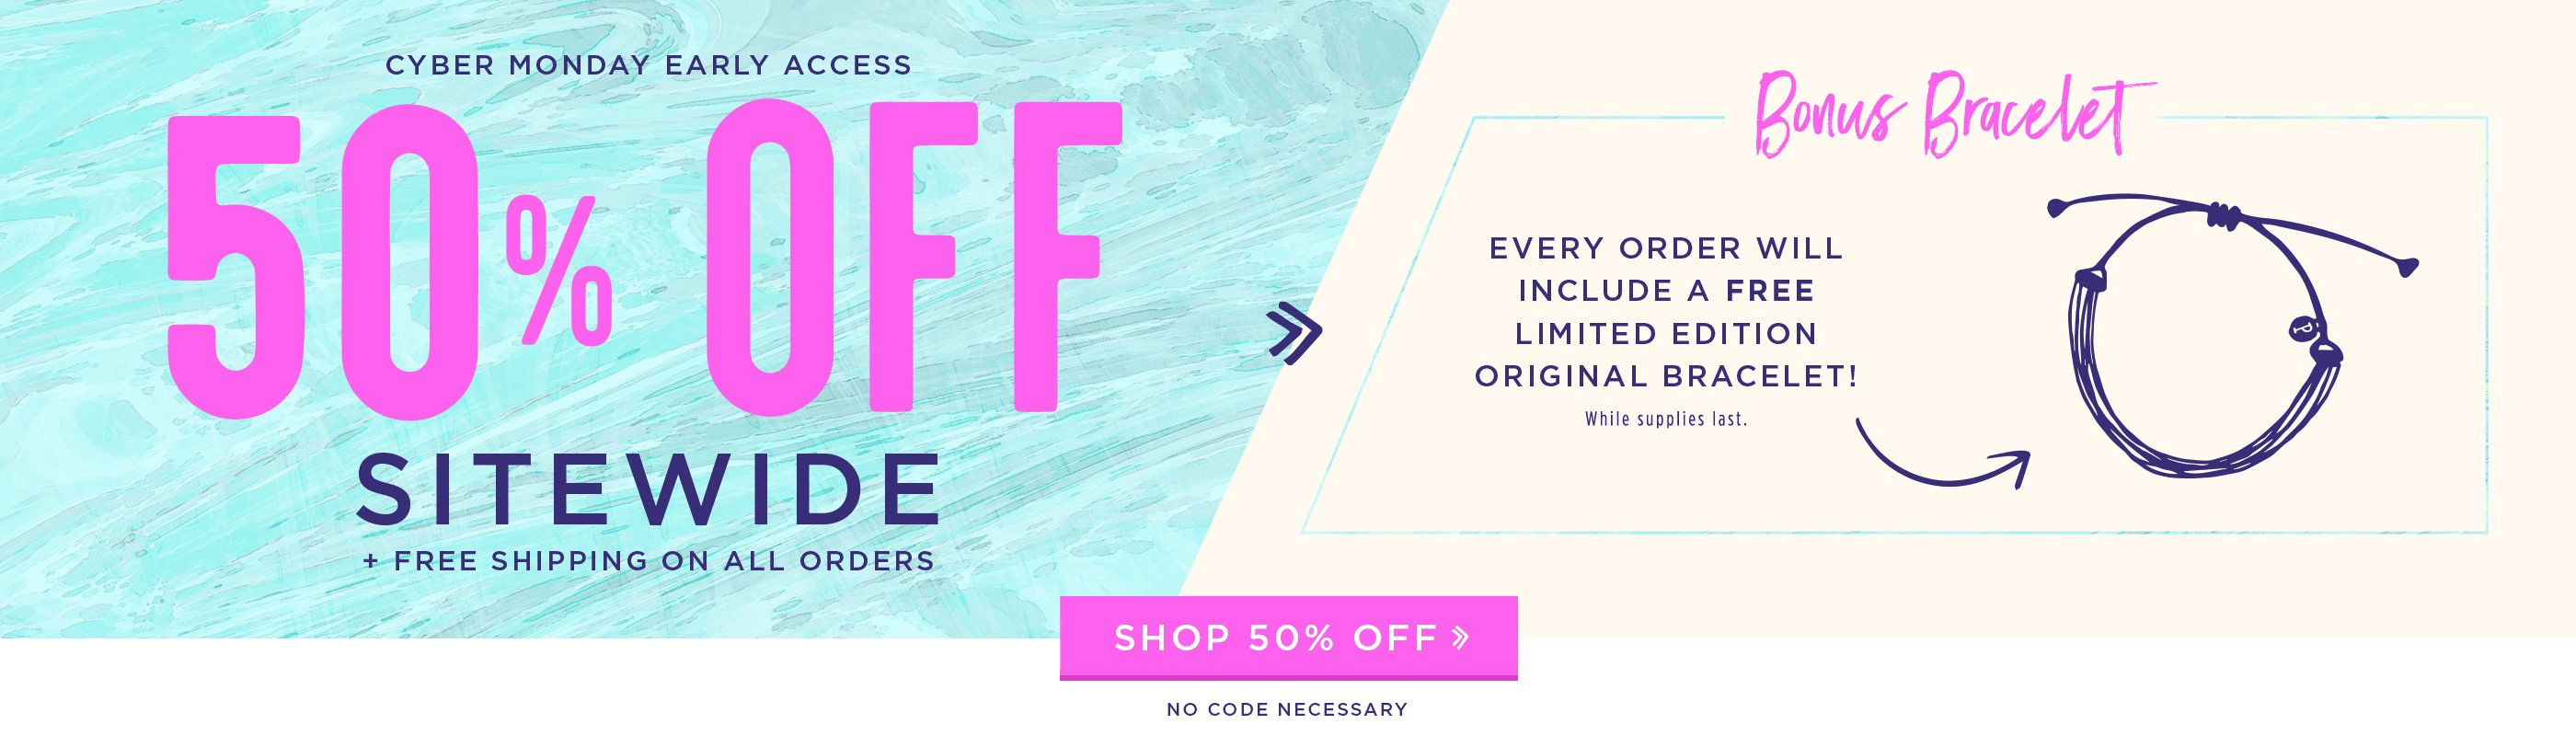 Pura Vida Cyber Monday Sale: 50% Off Entire Order + Free Ship + Free Gift!